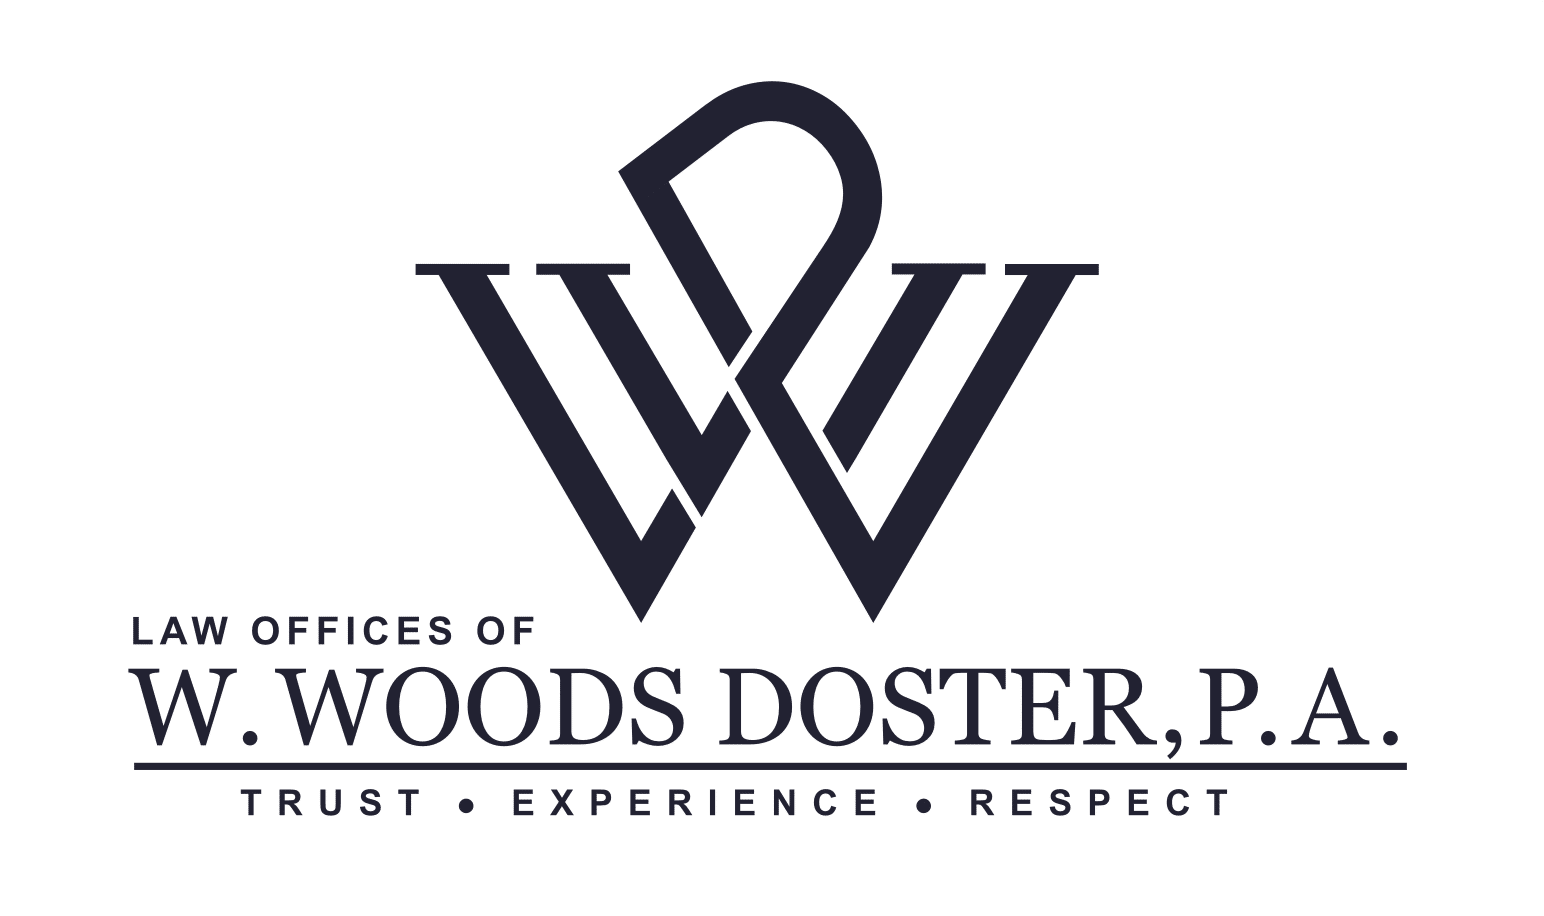 Law Offices of W. Woods Doster, P.A.